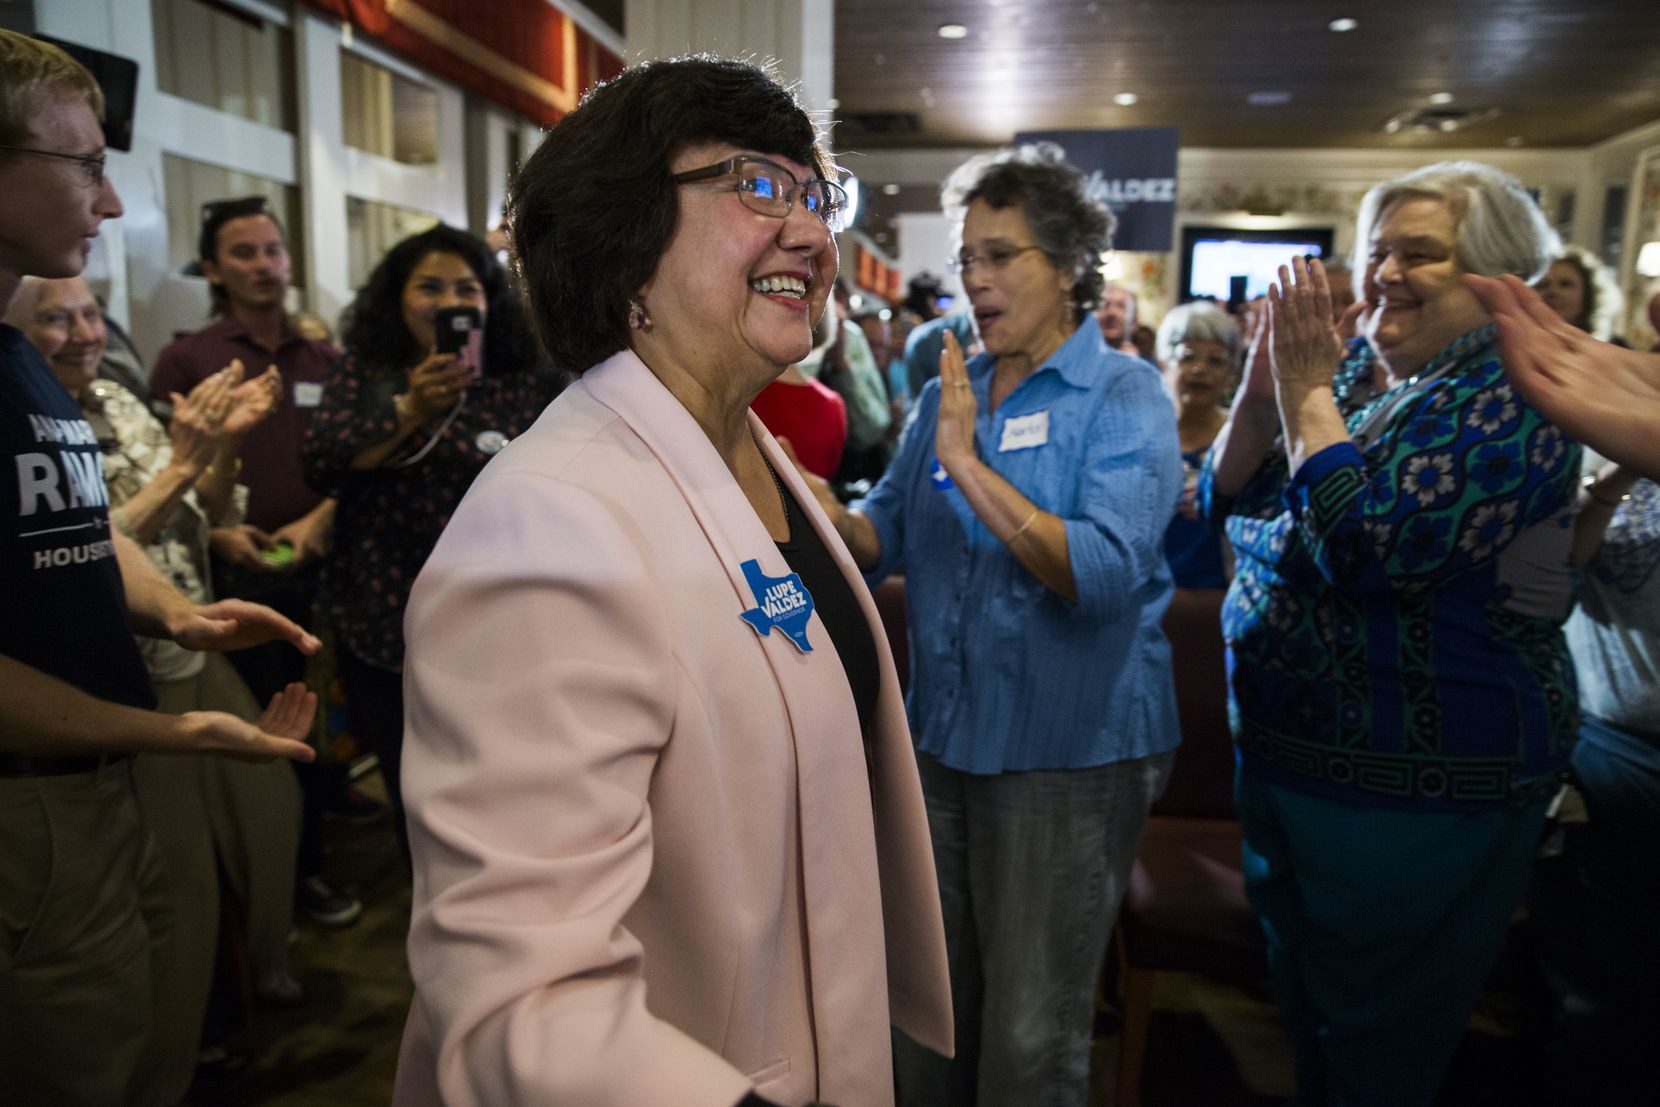 Gubernatorial candidate and former Dallas County Sheriff Lupe Valdez makes her way to a podium after her runoff win at a democratic party celebration at Ellen's in Dallas on Tuesday, May 22, 2018.